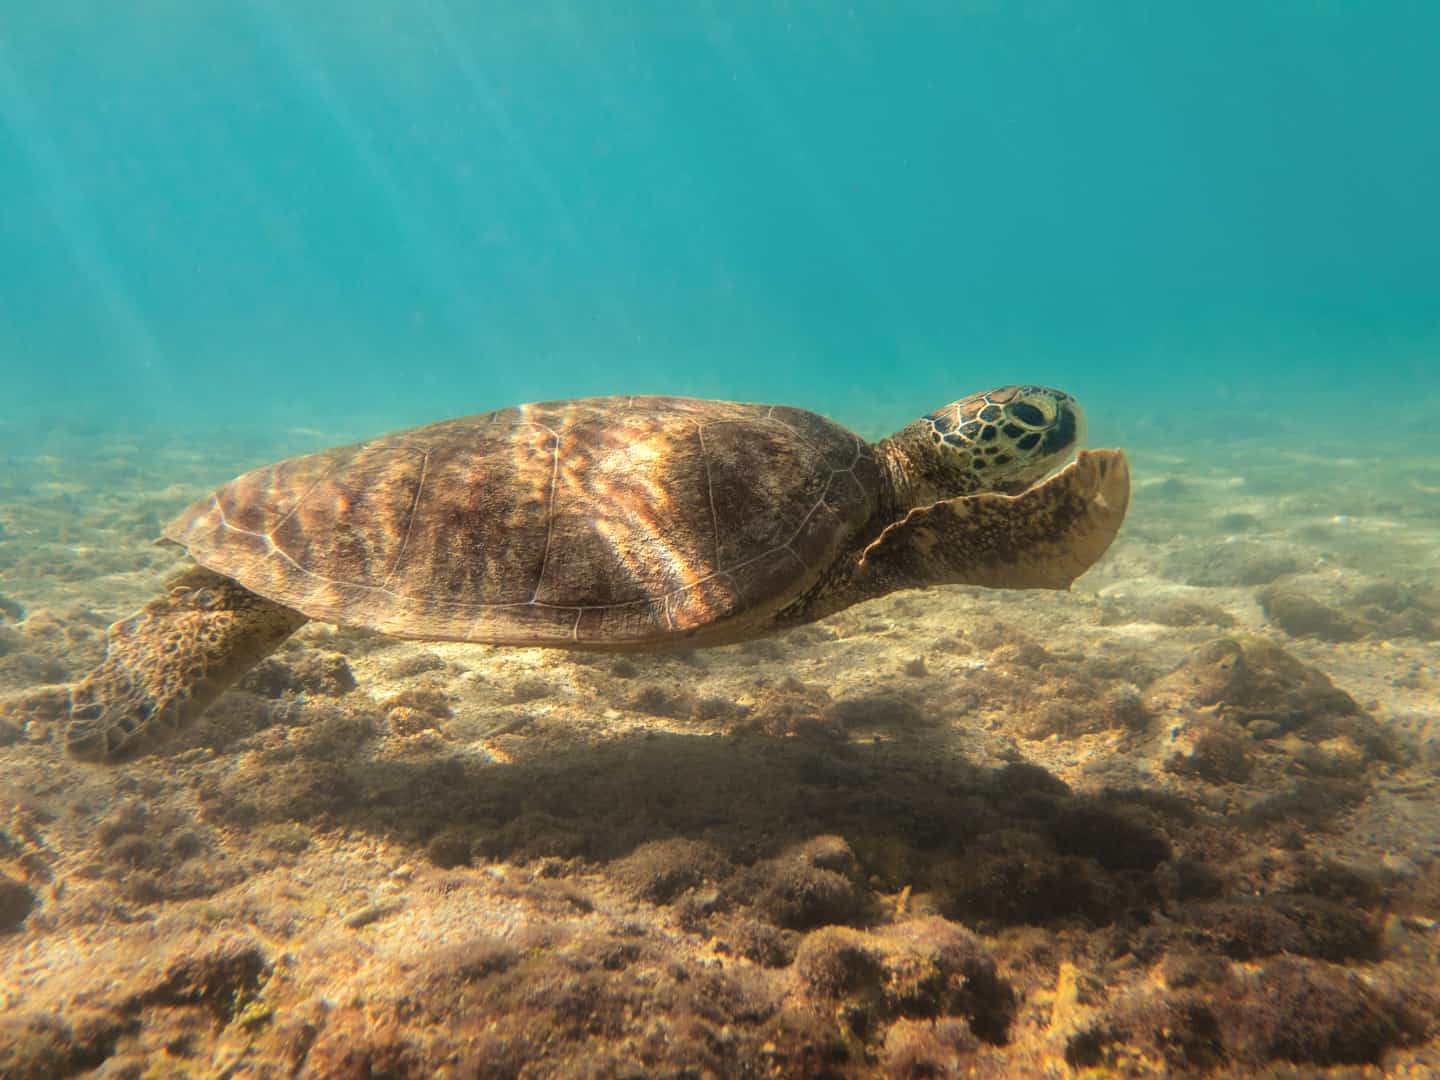 Underwater photo of a green turtle at Lowe Isles, Port Douglas